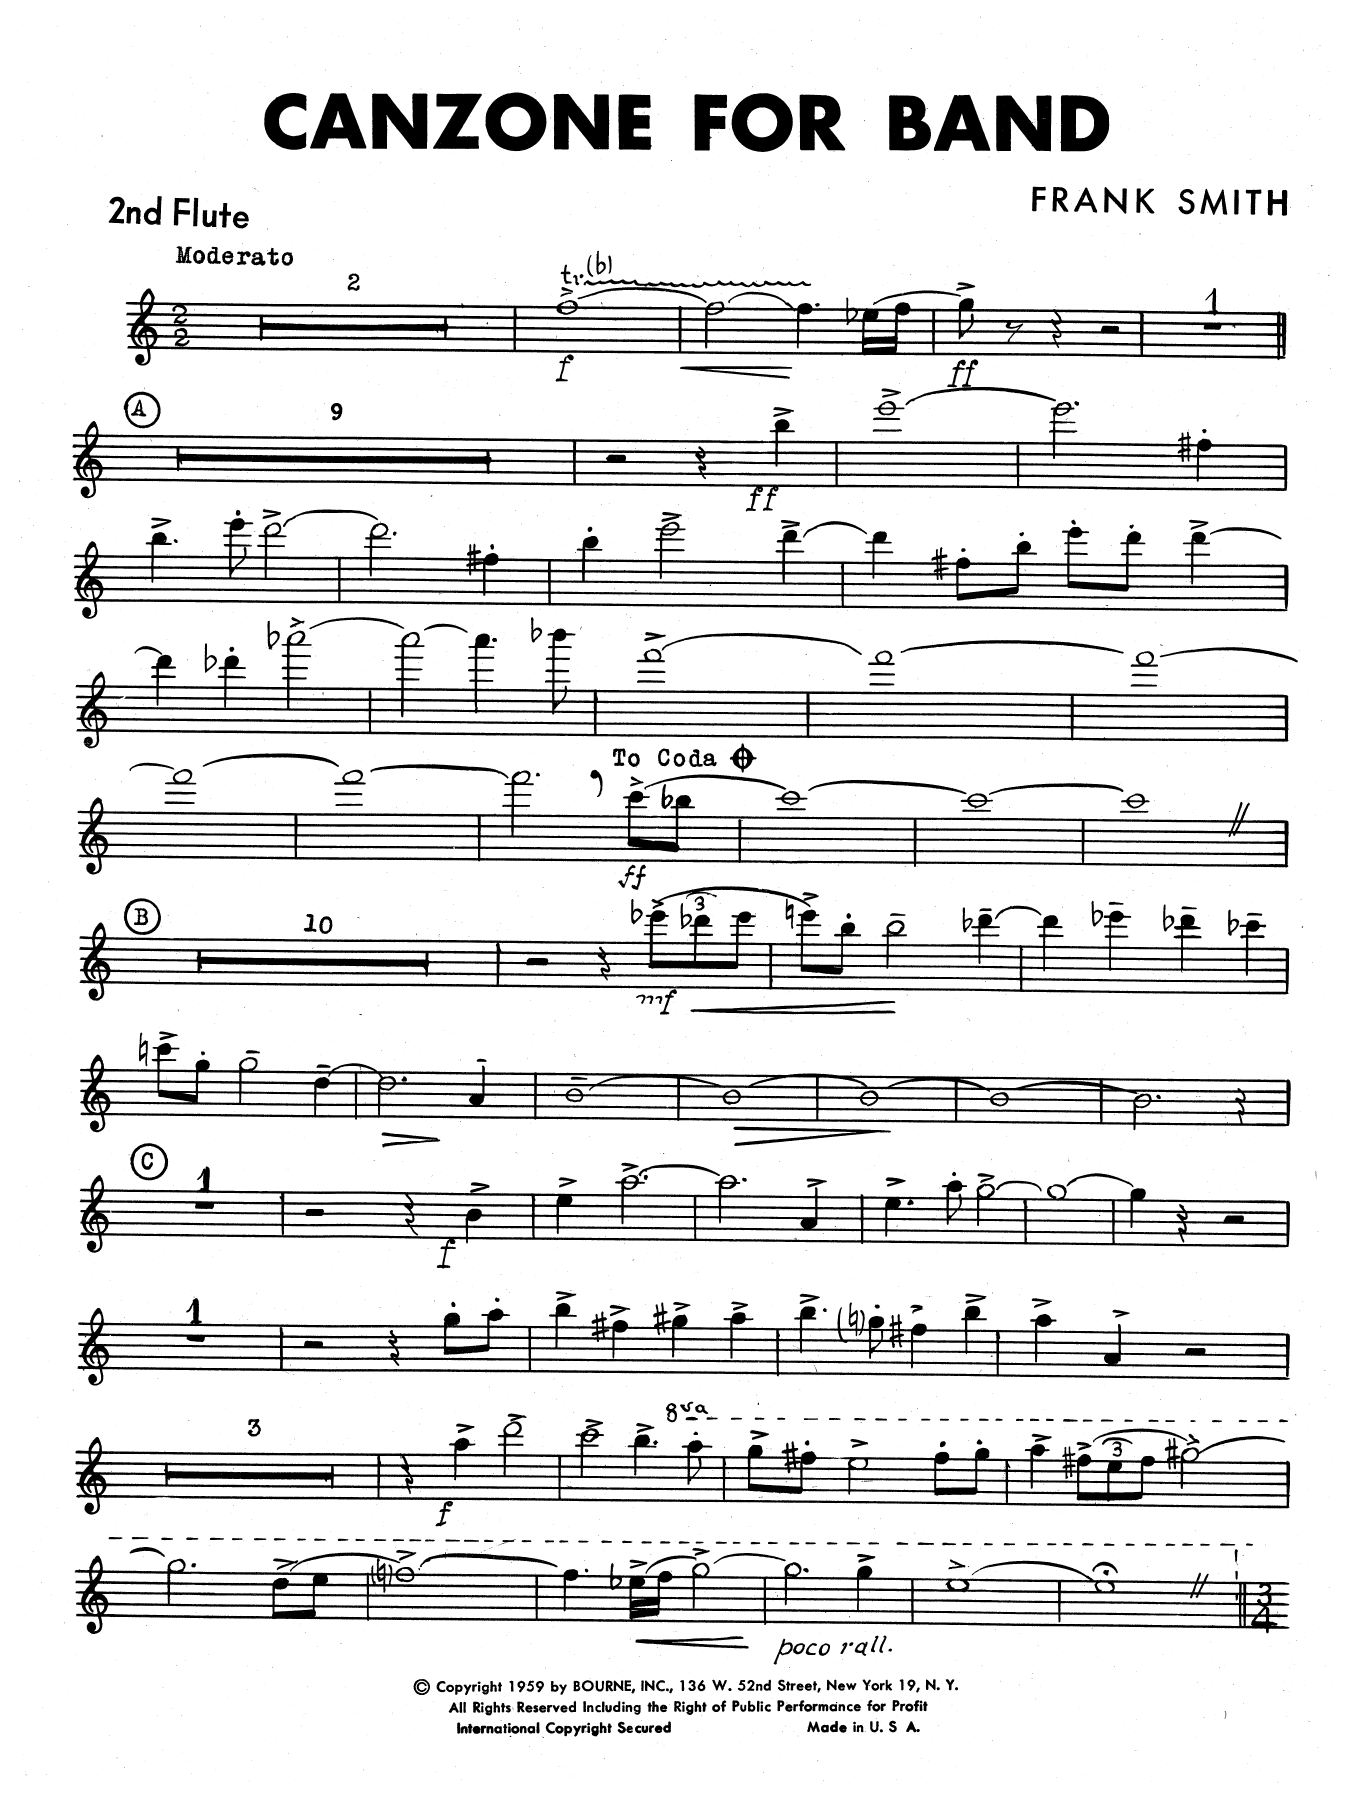 Canzone For Band - 2nd Flute